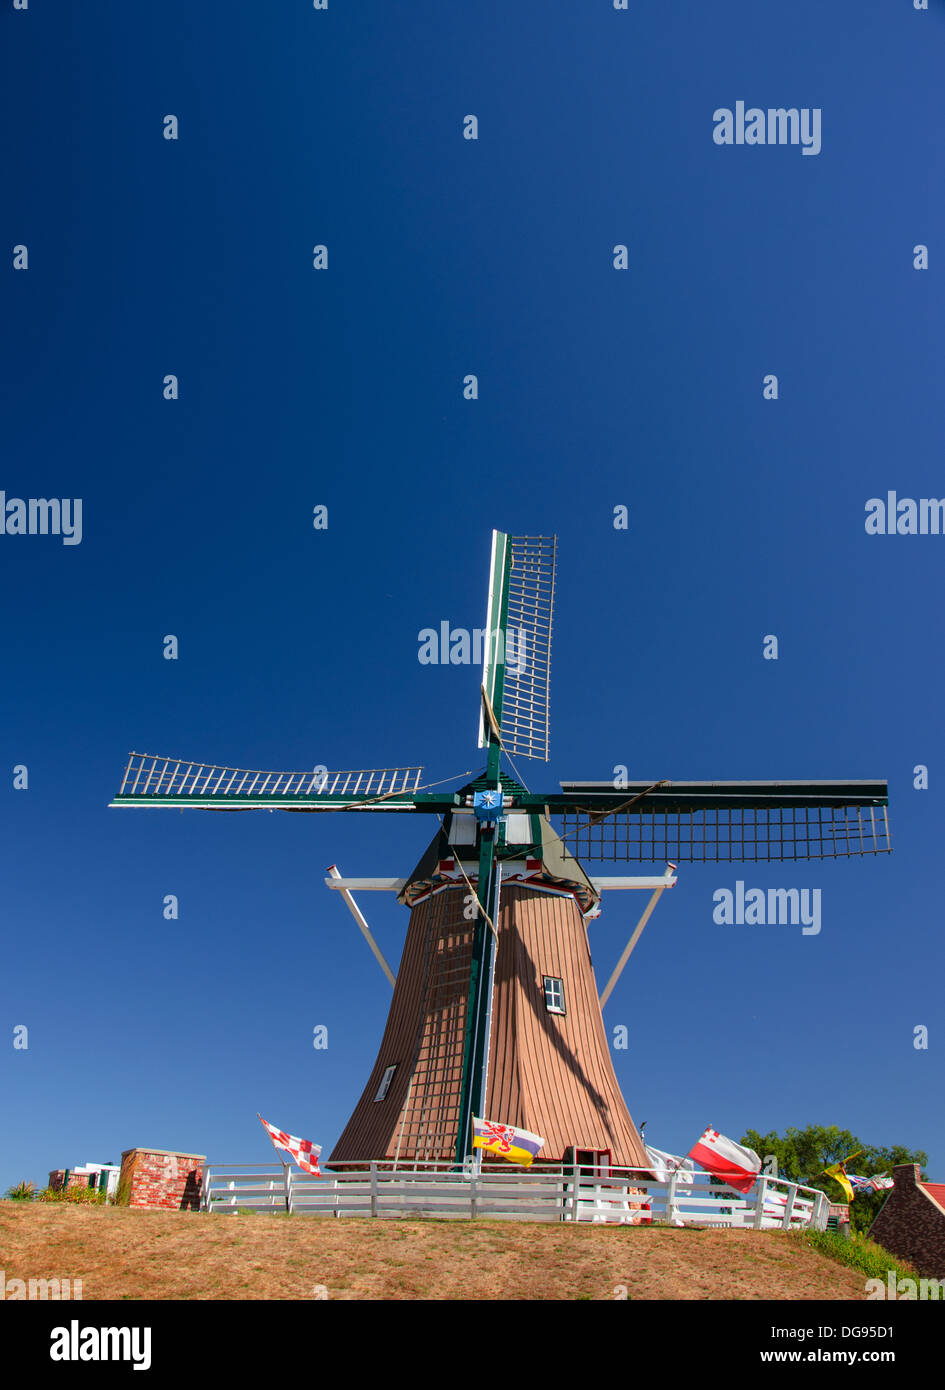 The De Immigrant Windmill in Fulton, Illinois, a town along the Lincoln Highway - Stock Image